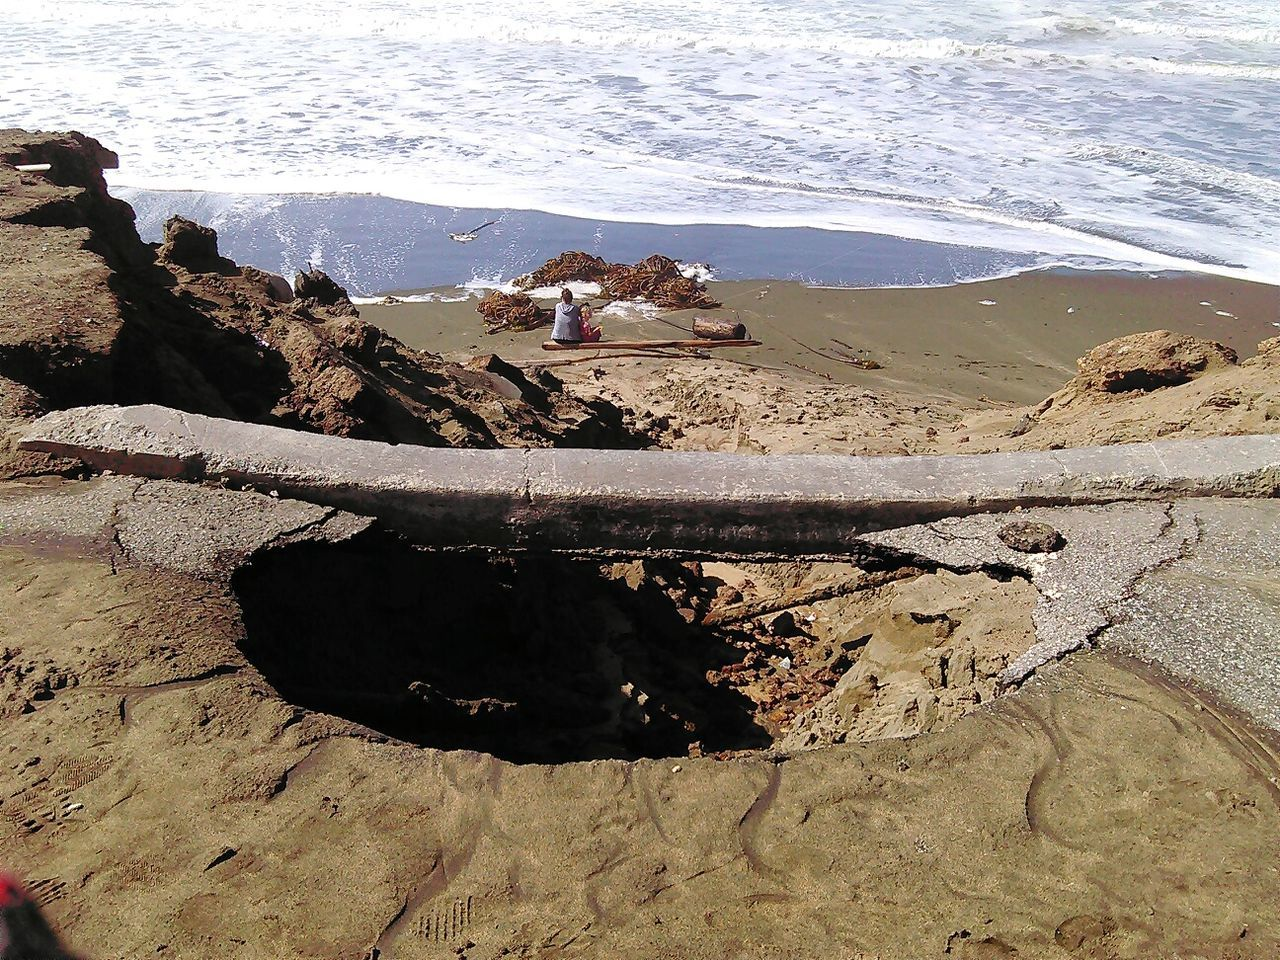 Water Sunlight Nature Outdoors Day Real People Beach Beauty In Nature Horizontal Animal Themes Sky Ocean Photography Social Issues Coastal Erosion El Niño Ocean Beach San Francisco Perspectives On Nature